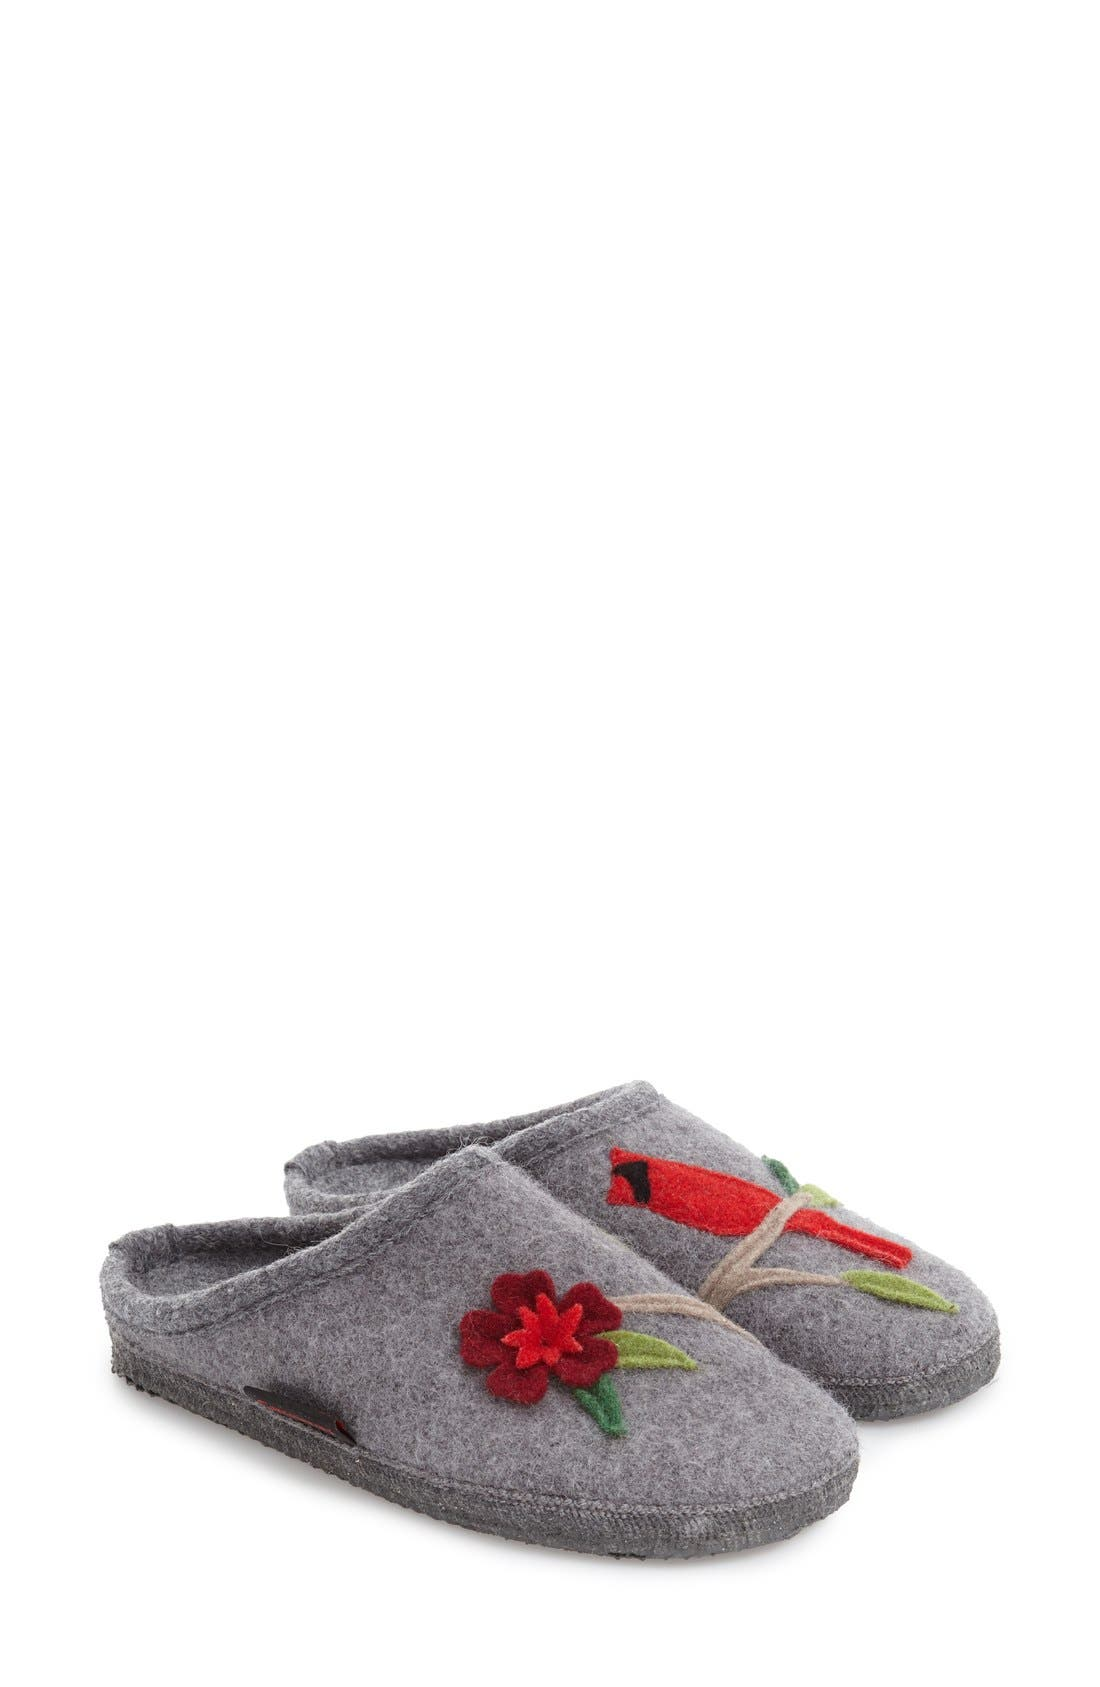 'Angela' Wool Slipper,                         Main,                         color,